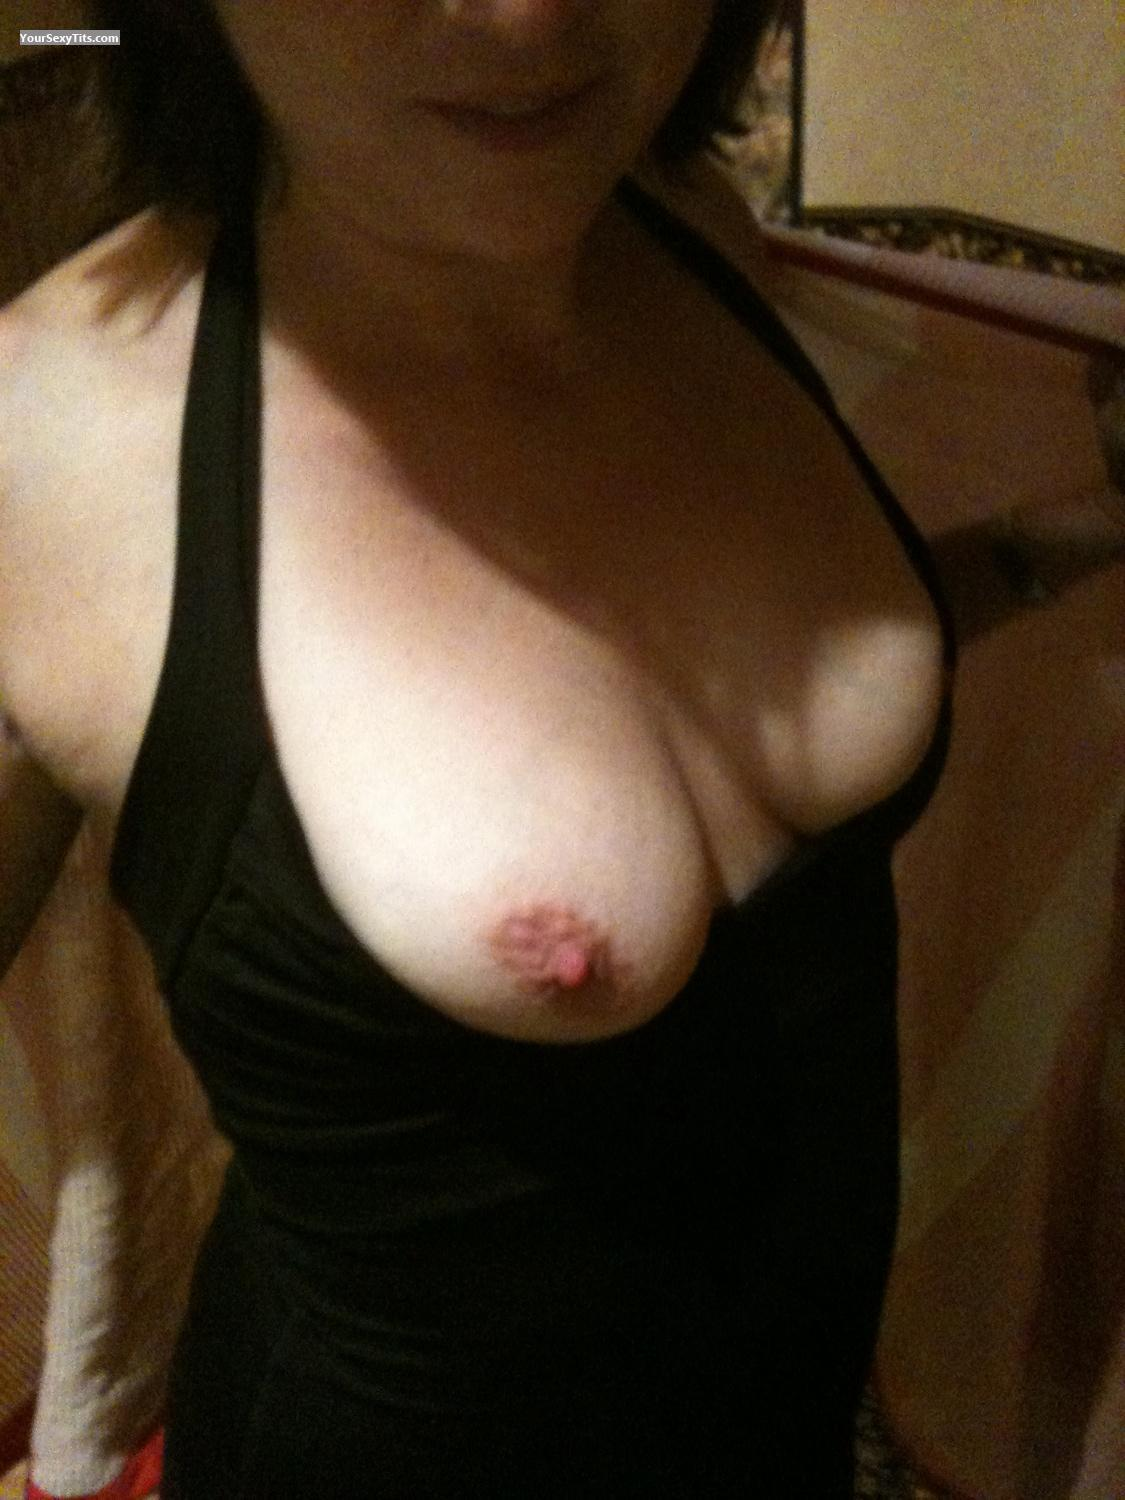 Tit Flash: Medium Tits By IPhone - Funwife from United States